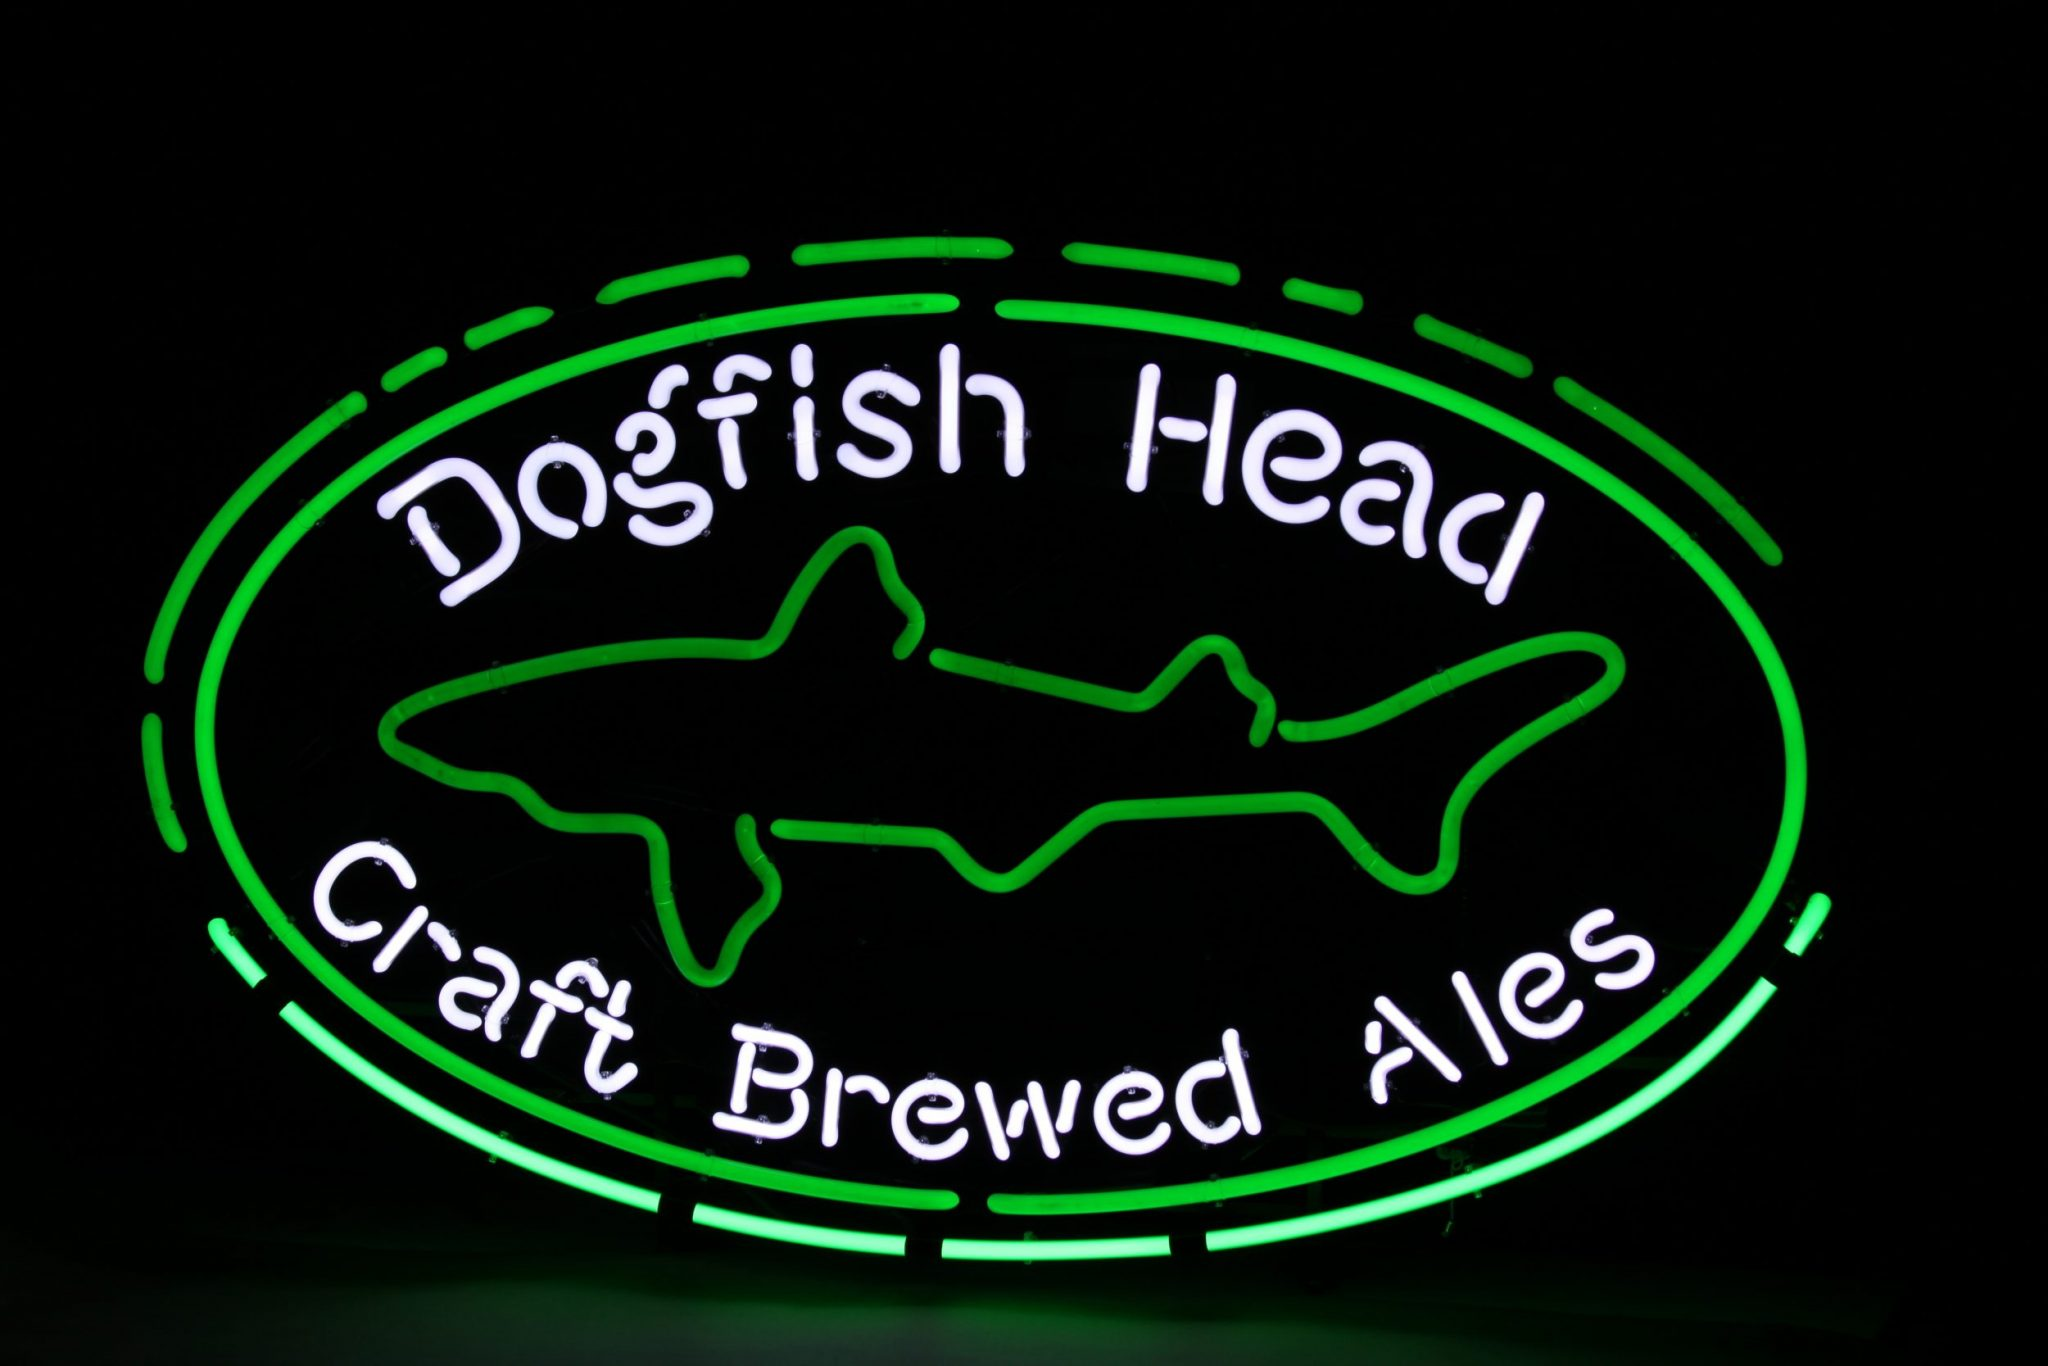 dogfish head beer sign